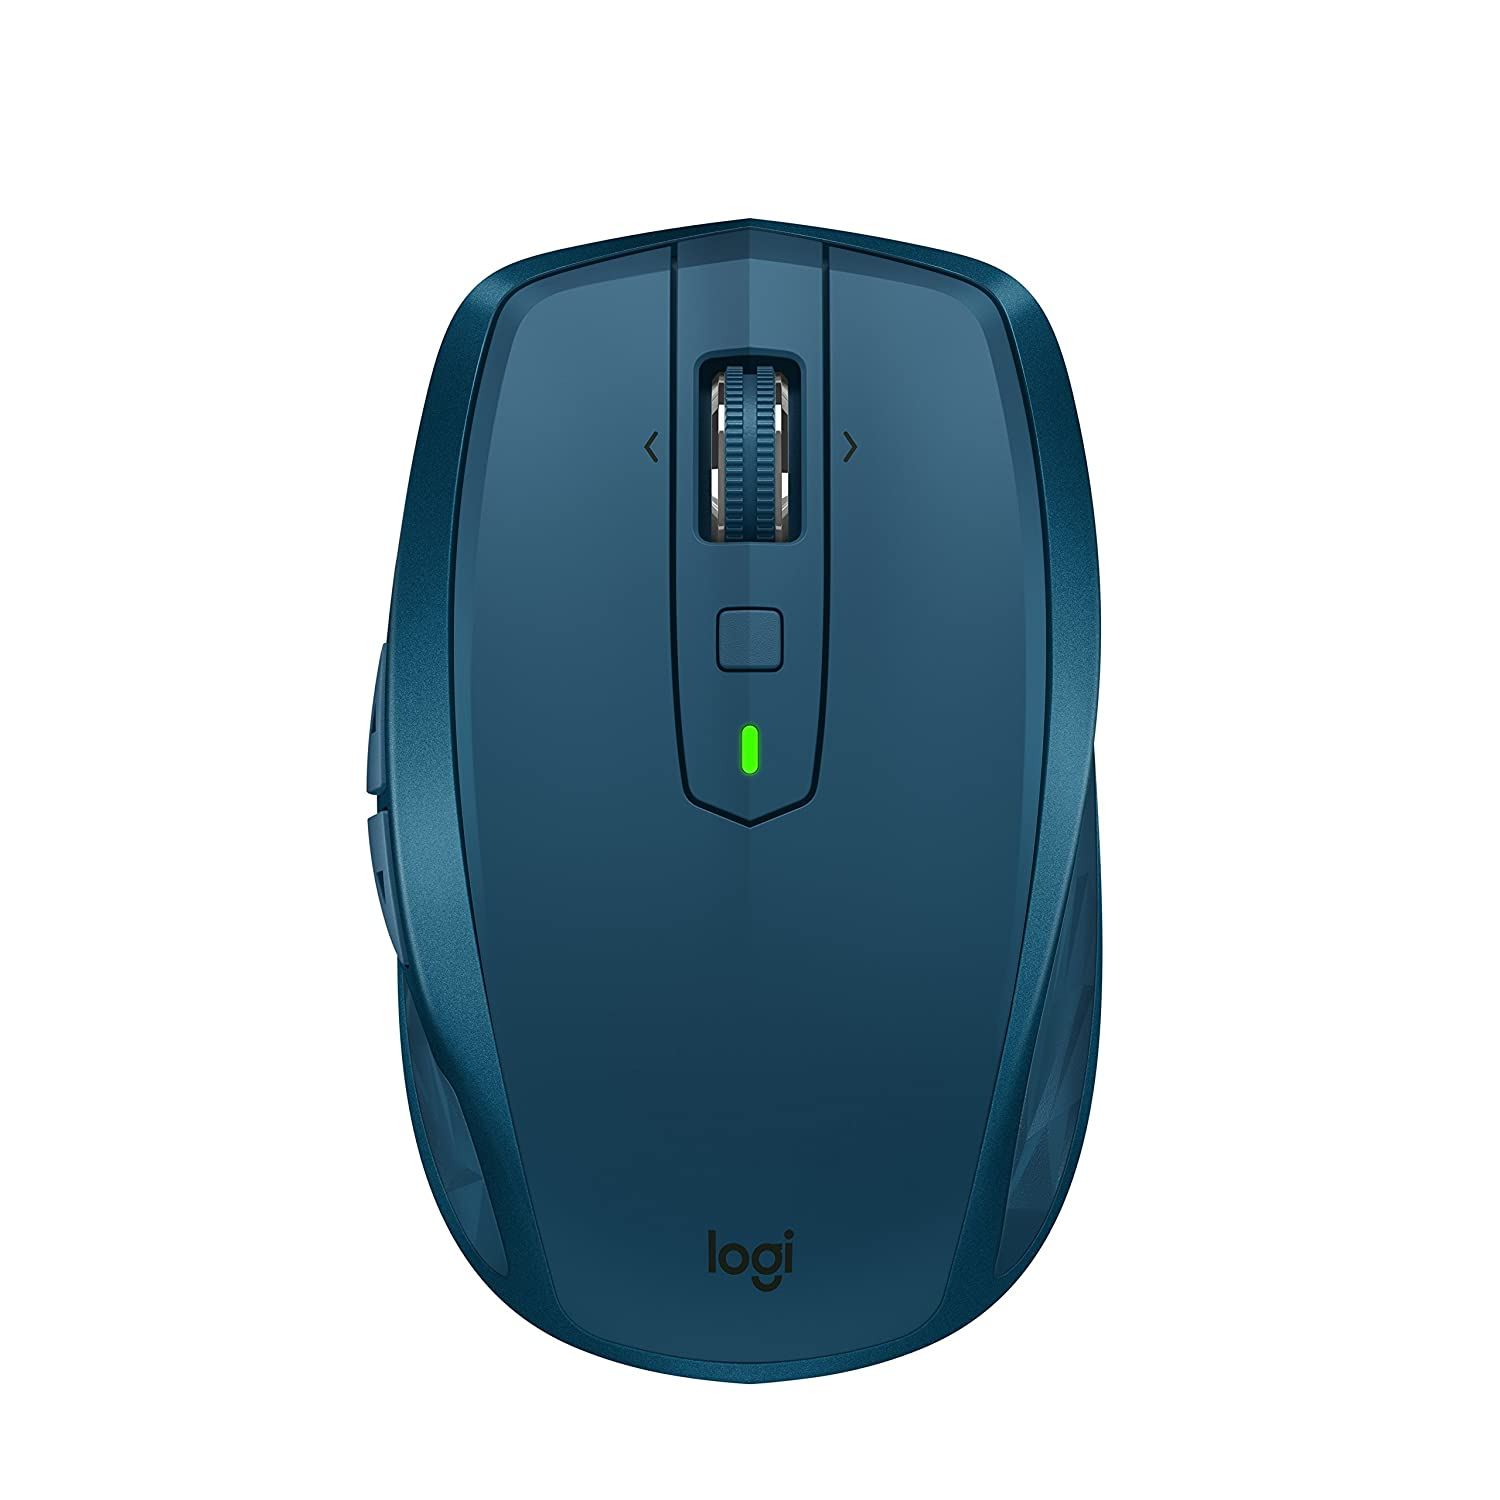 Amazon.com: Logitech MX Anywhere 2S Wireless Mouse – Use on Any Surface,  Hyper-Fast Scrolling, Rechargeable, Control up to 3 Apple Mac and Windows  Computers ...